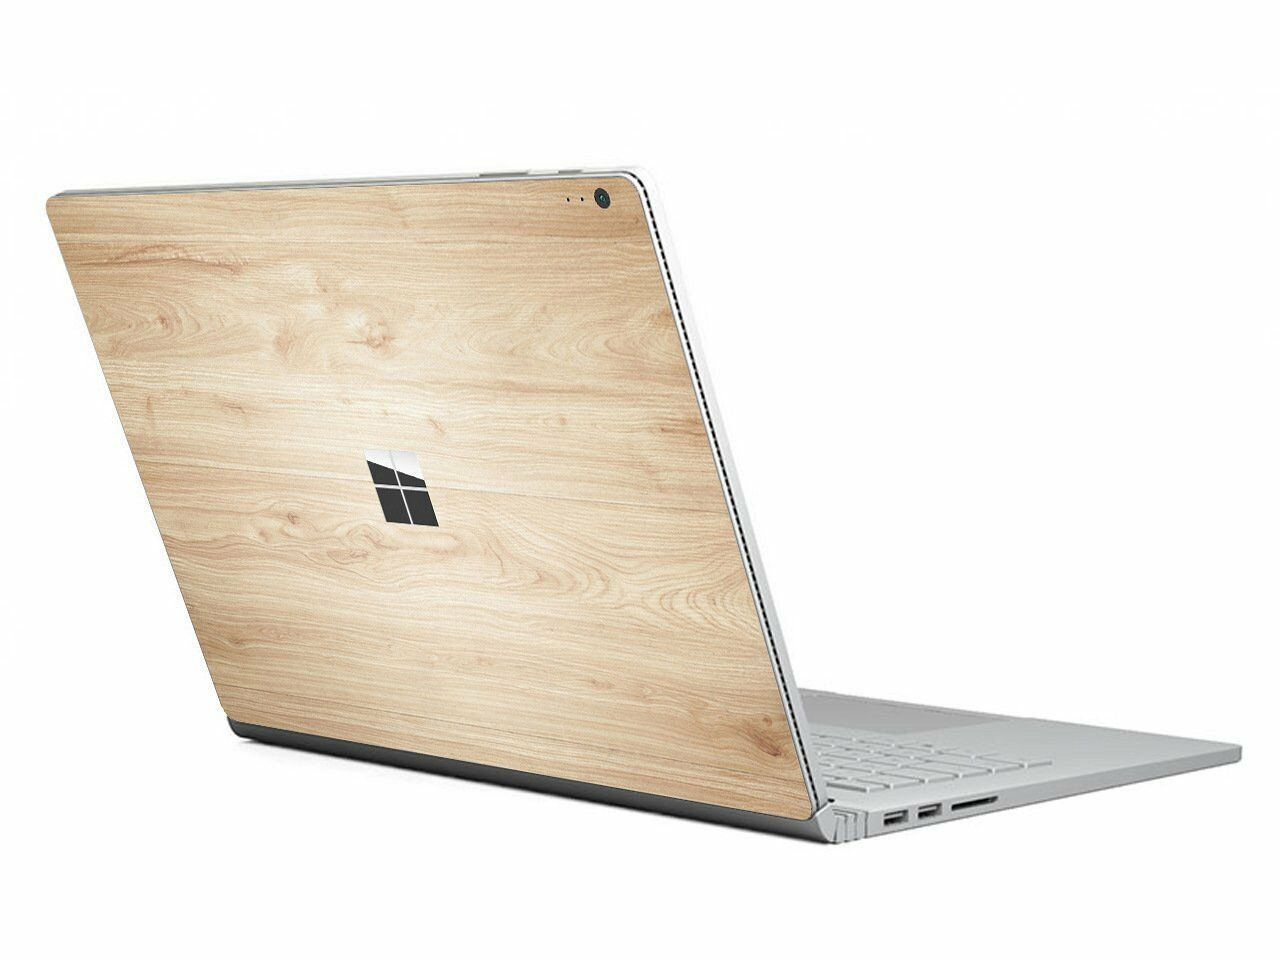 chasbete surface book decal skin wood grain protective vinyl sticker